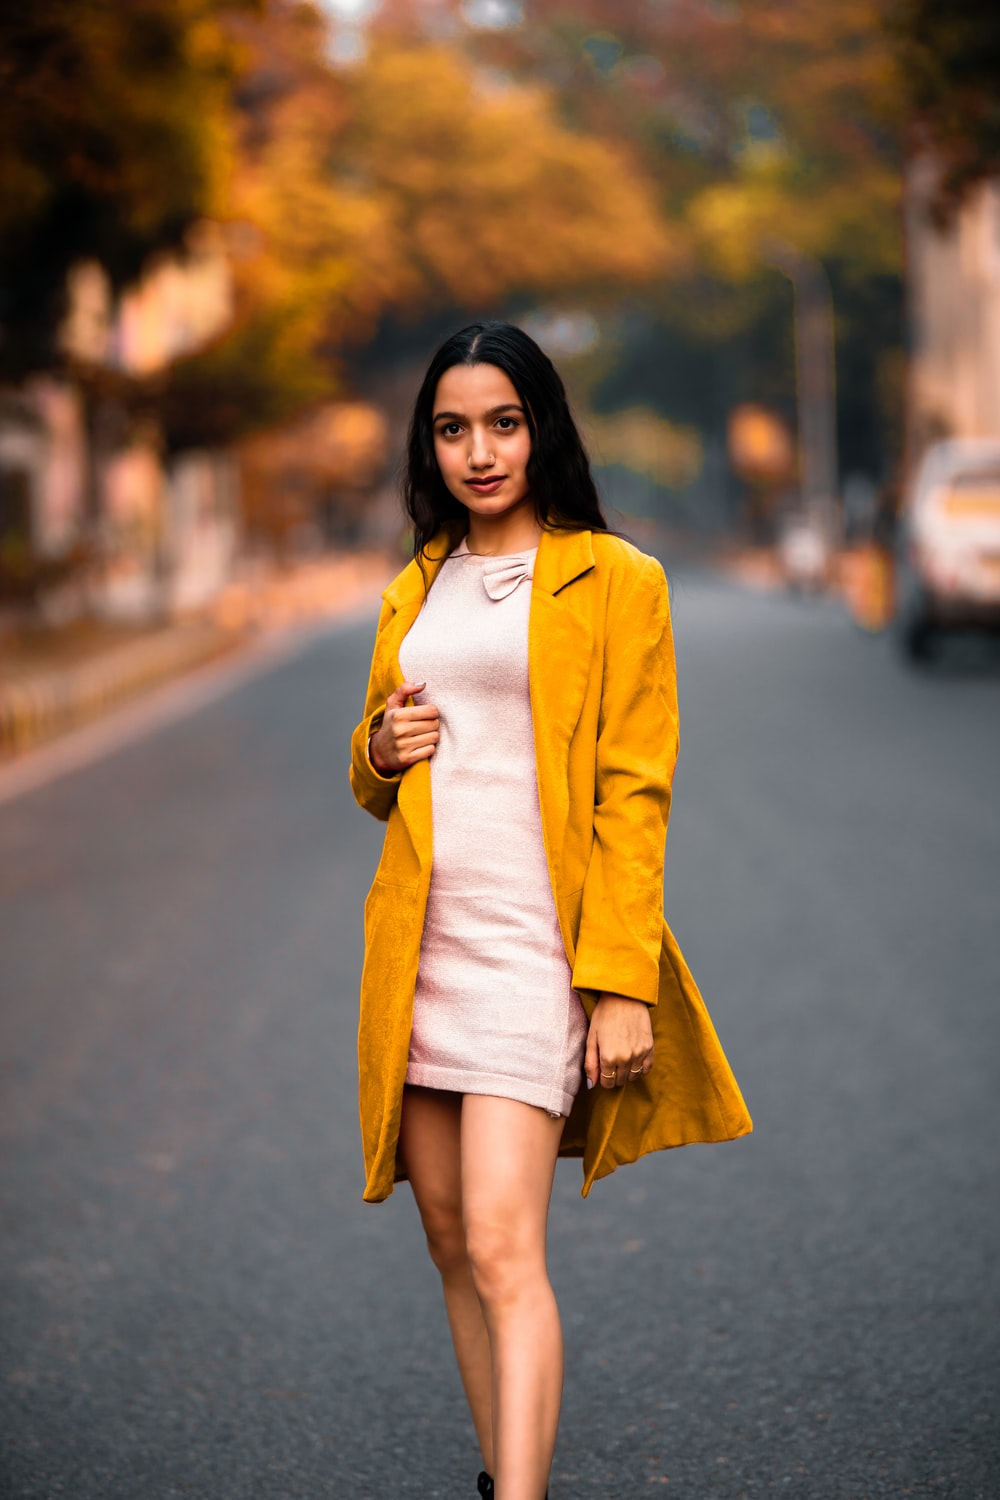 woman in yellow blazer standing on road during daytime